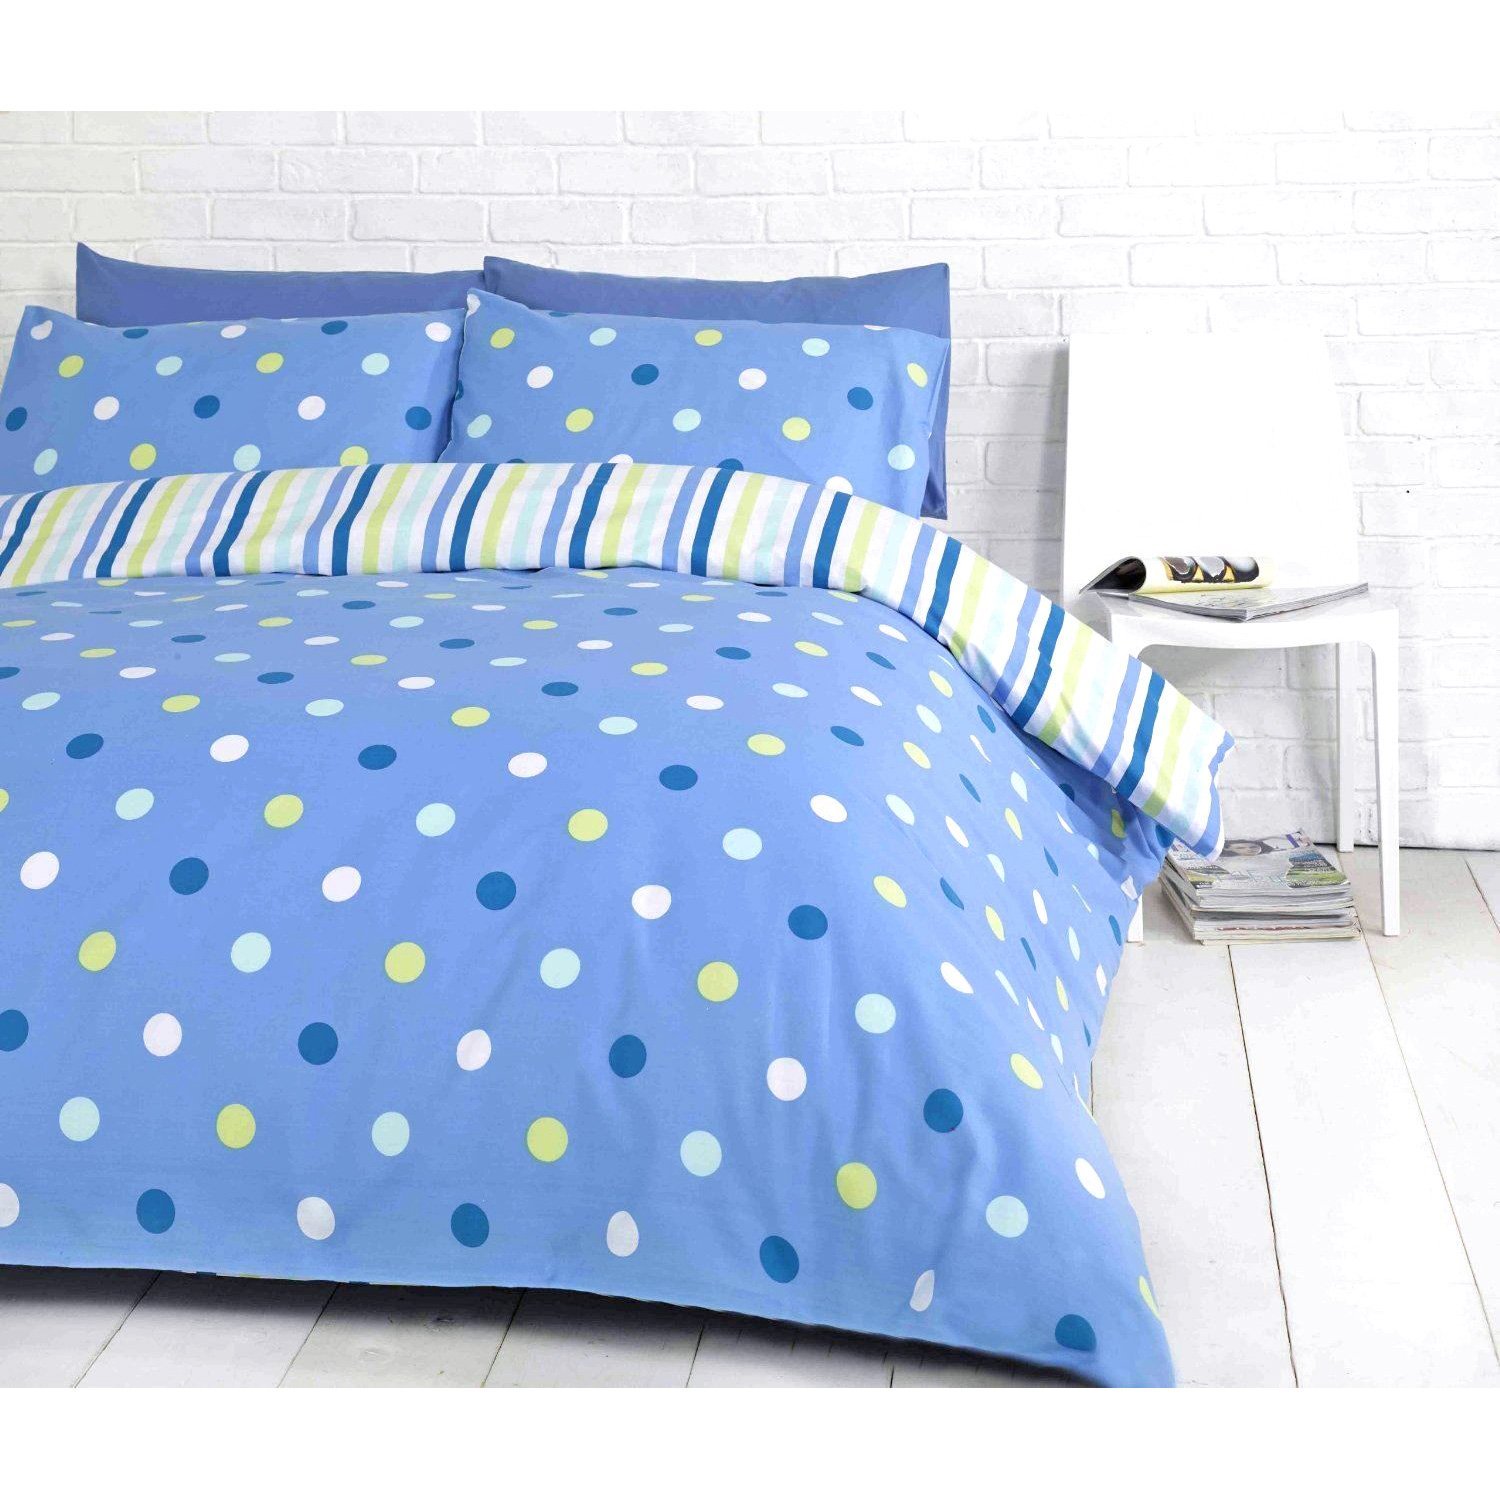 Blue polka dot bedding - Bright Spot Duvet Cover Polka Dot Reversible Stripe Bedding White Blue Bed Set Amazon Co Uk Kitchen Home